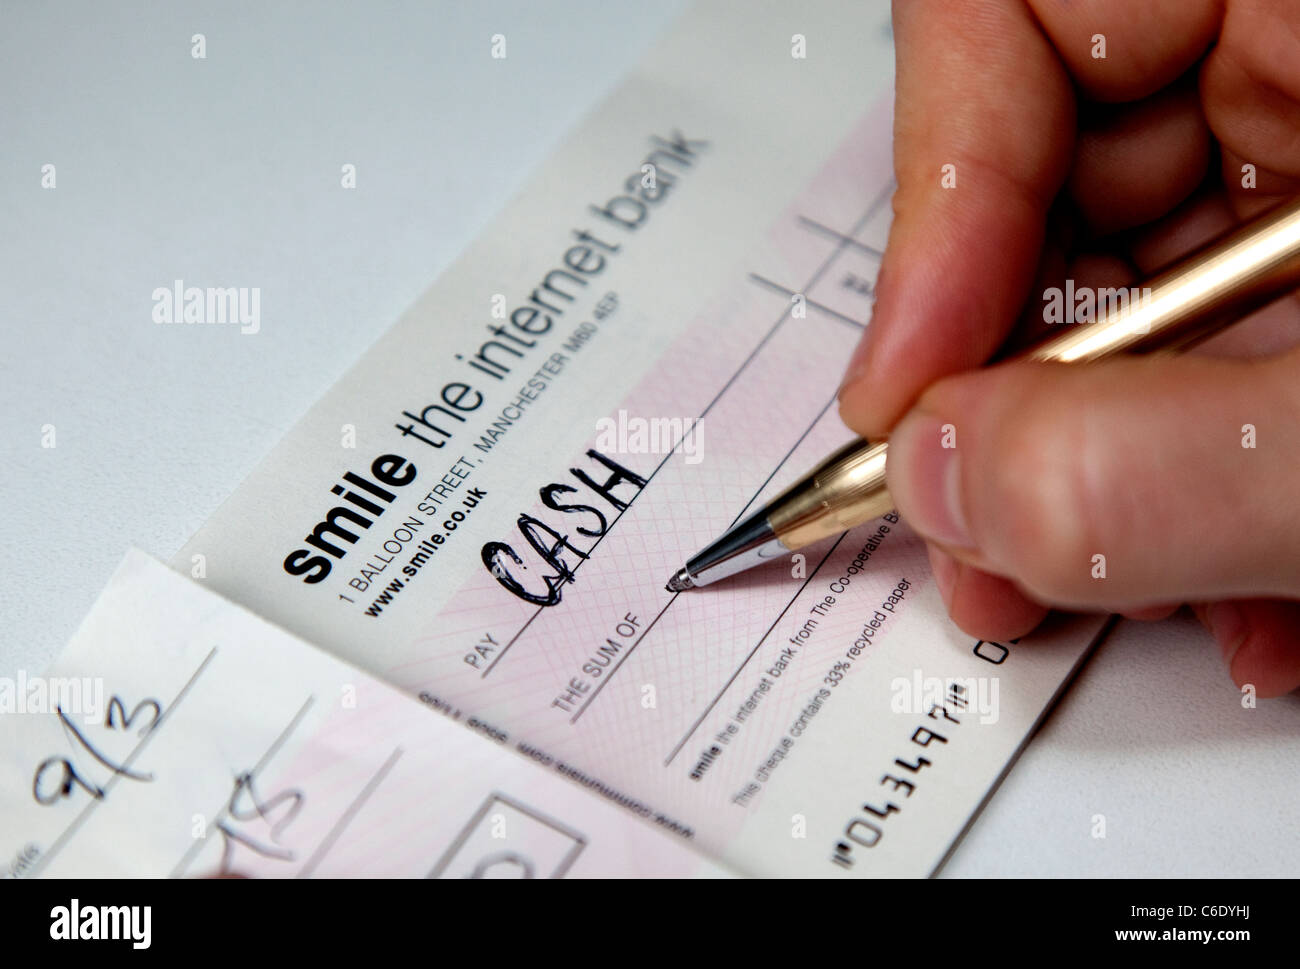 Cash Cheque Stock Photos & Cash Cheque Stock Images - Alamy